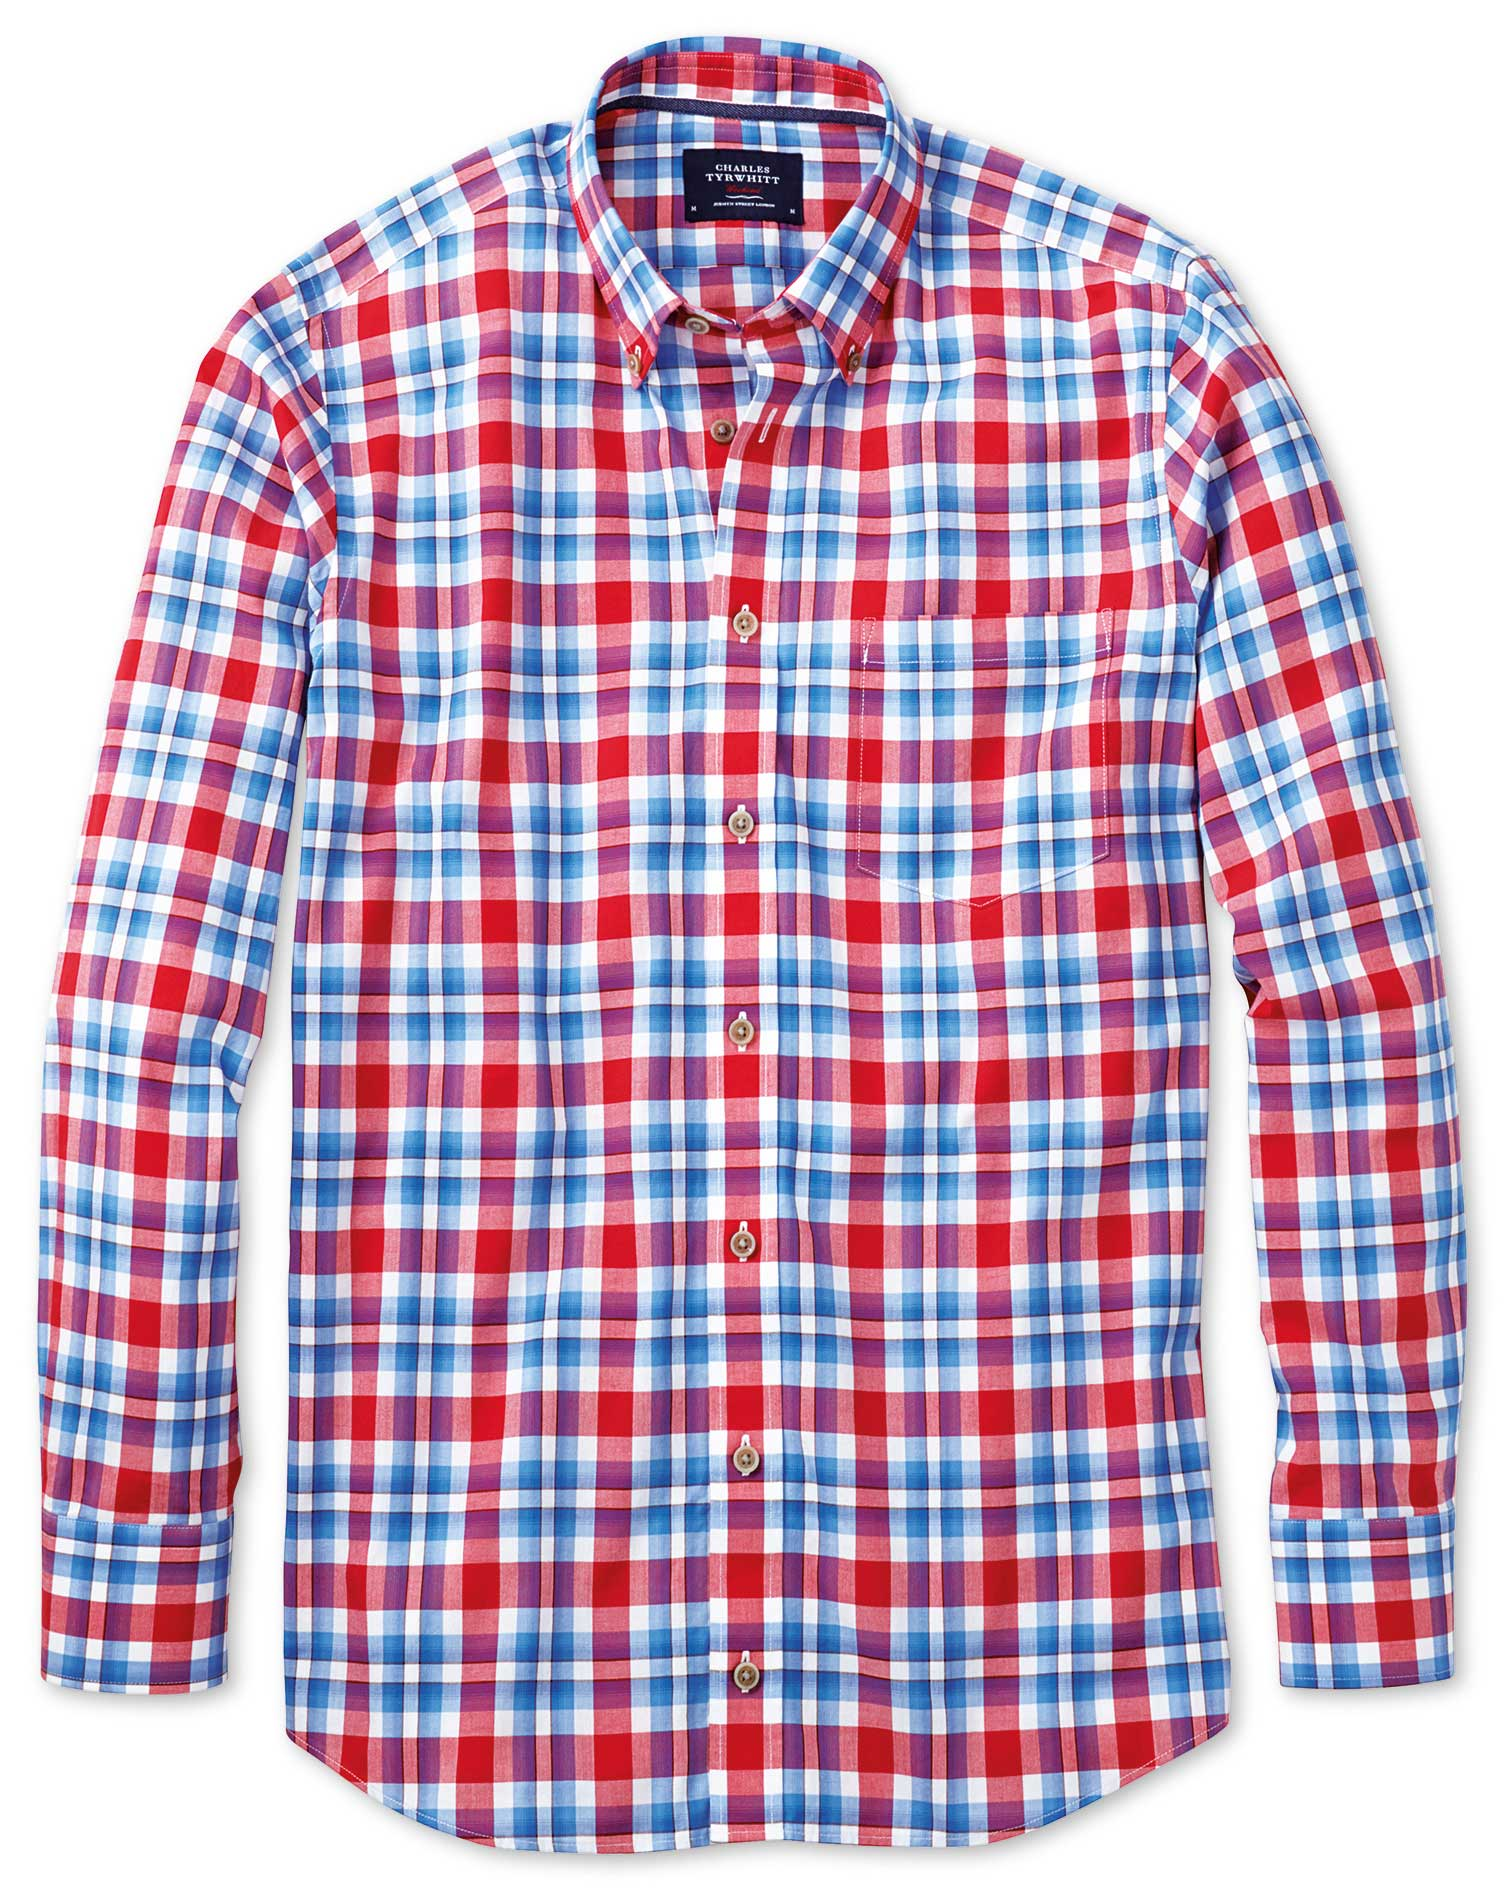 Classic Fit Button-Down Poplin Sky Blue and Red Check Cotton Shirt Single Cuff Size Medium by Charle